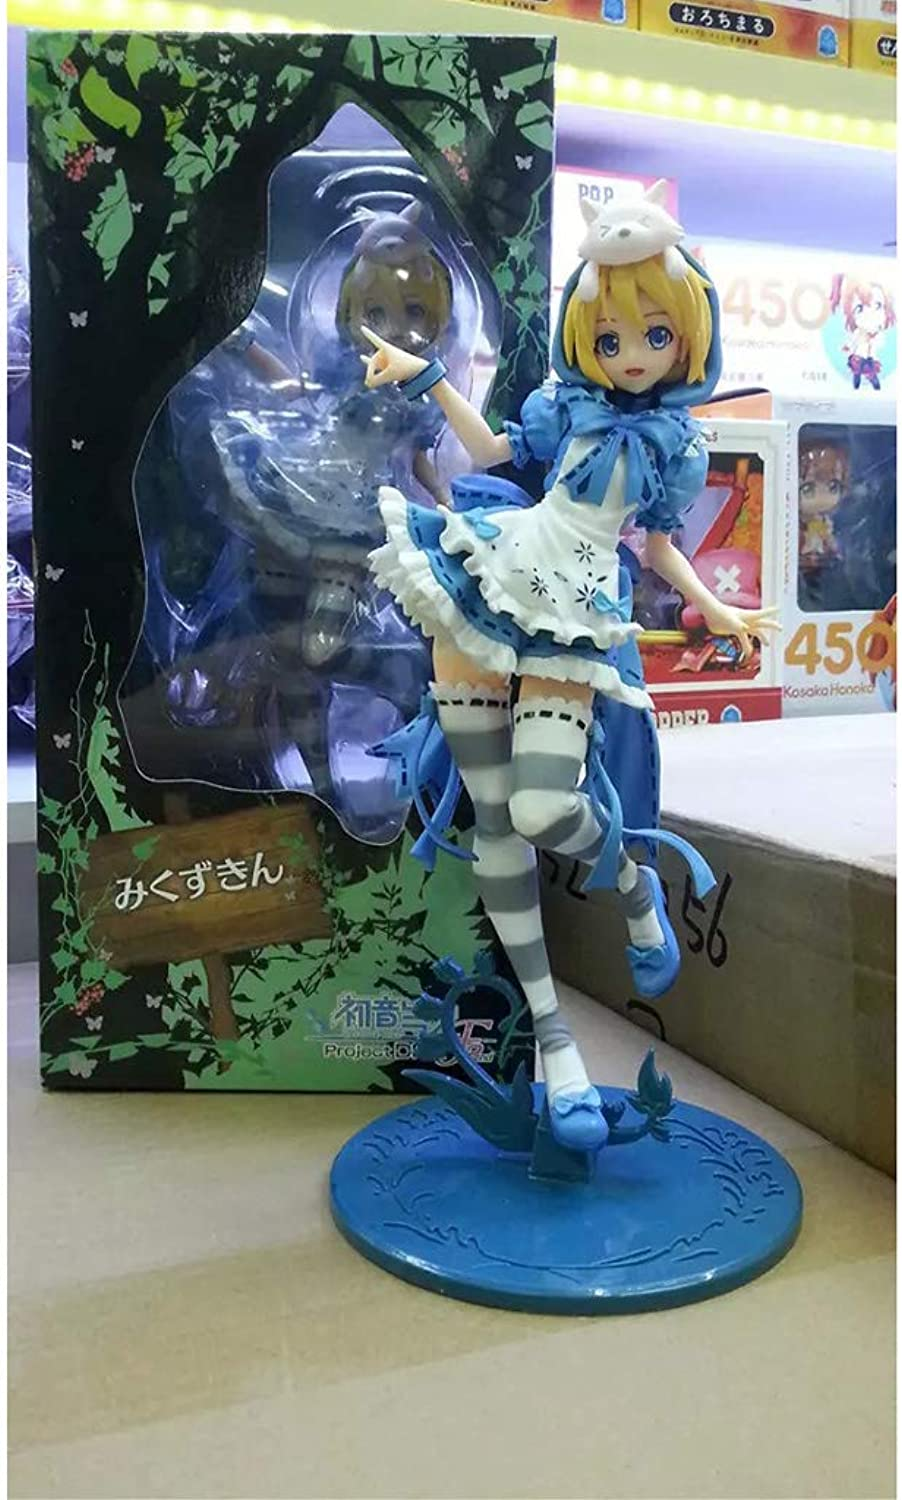 Toy Figurine Toy Model Anime Character Crafts Decorations Birthday Gift 23CM SYFO (color   bluee)